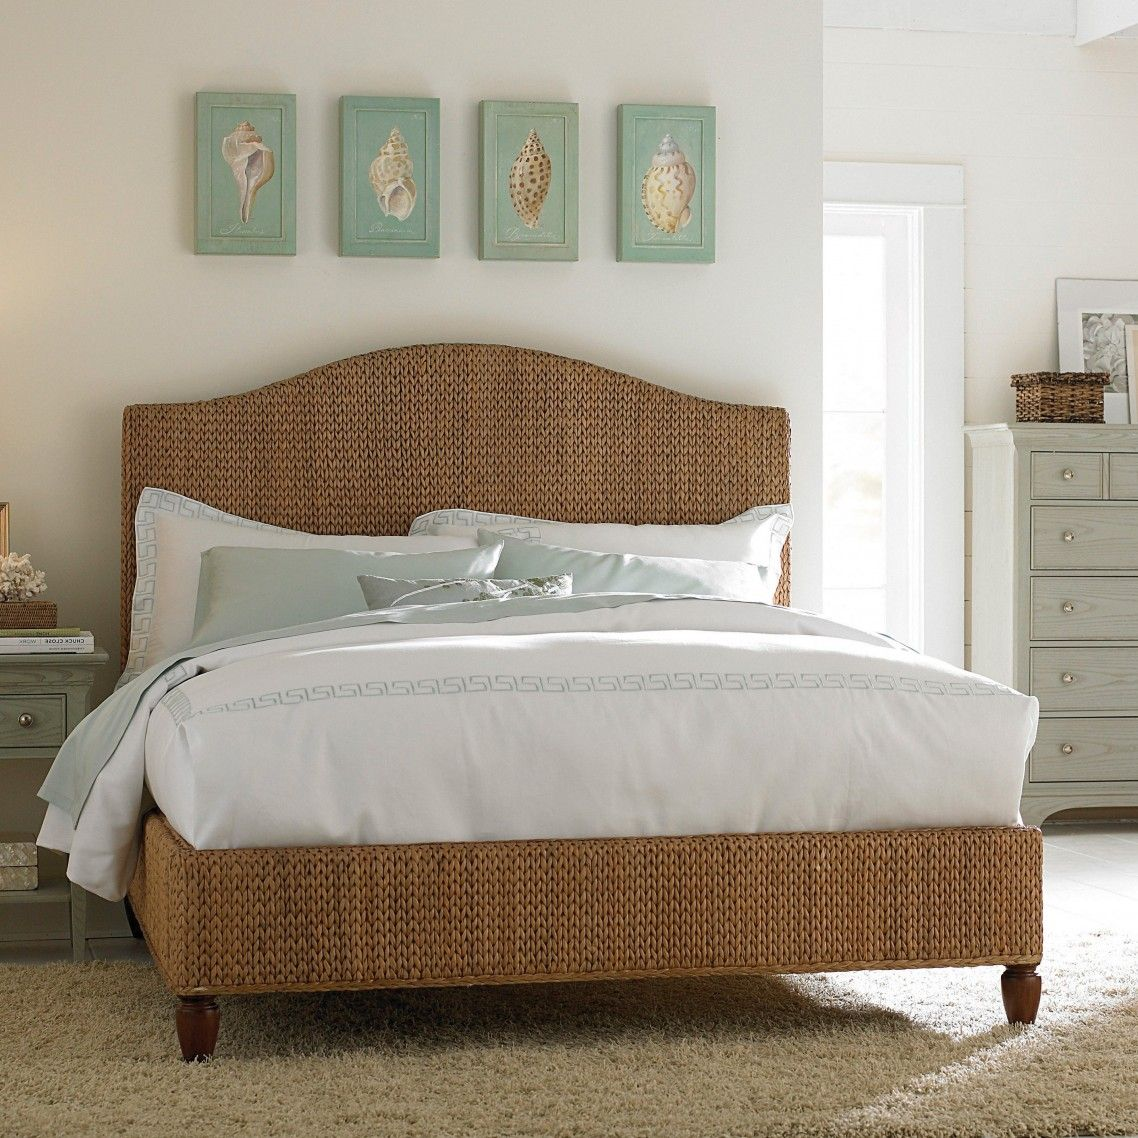 Awesome Excellent Brown Wicker Rattan Mid Century Queen Bed Frame